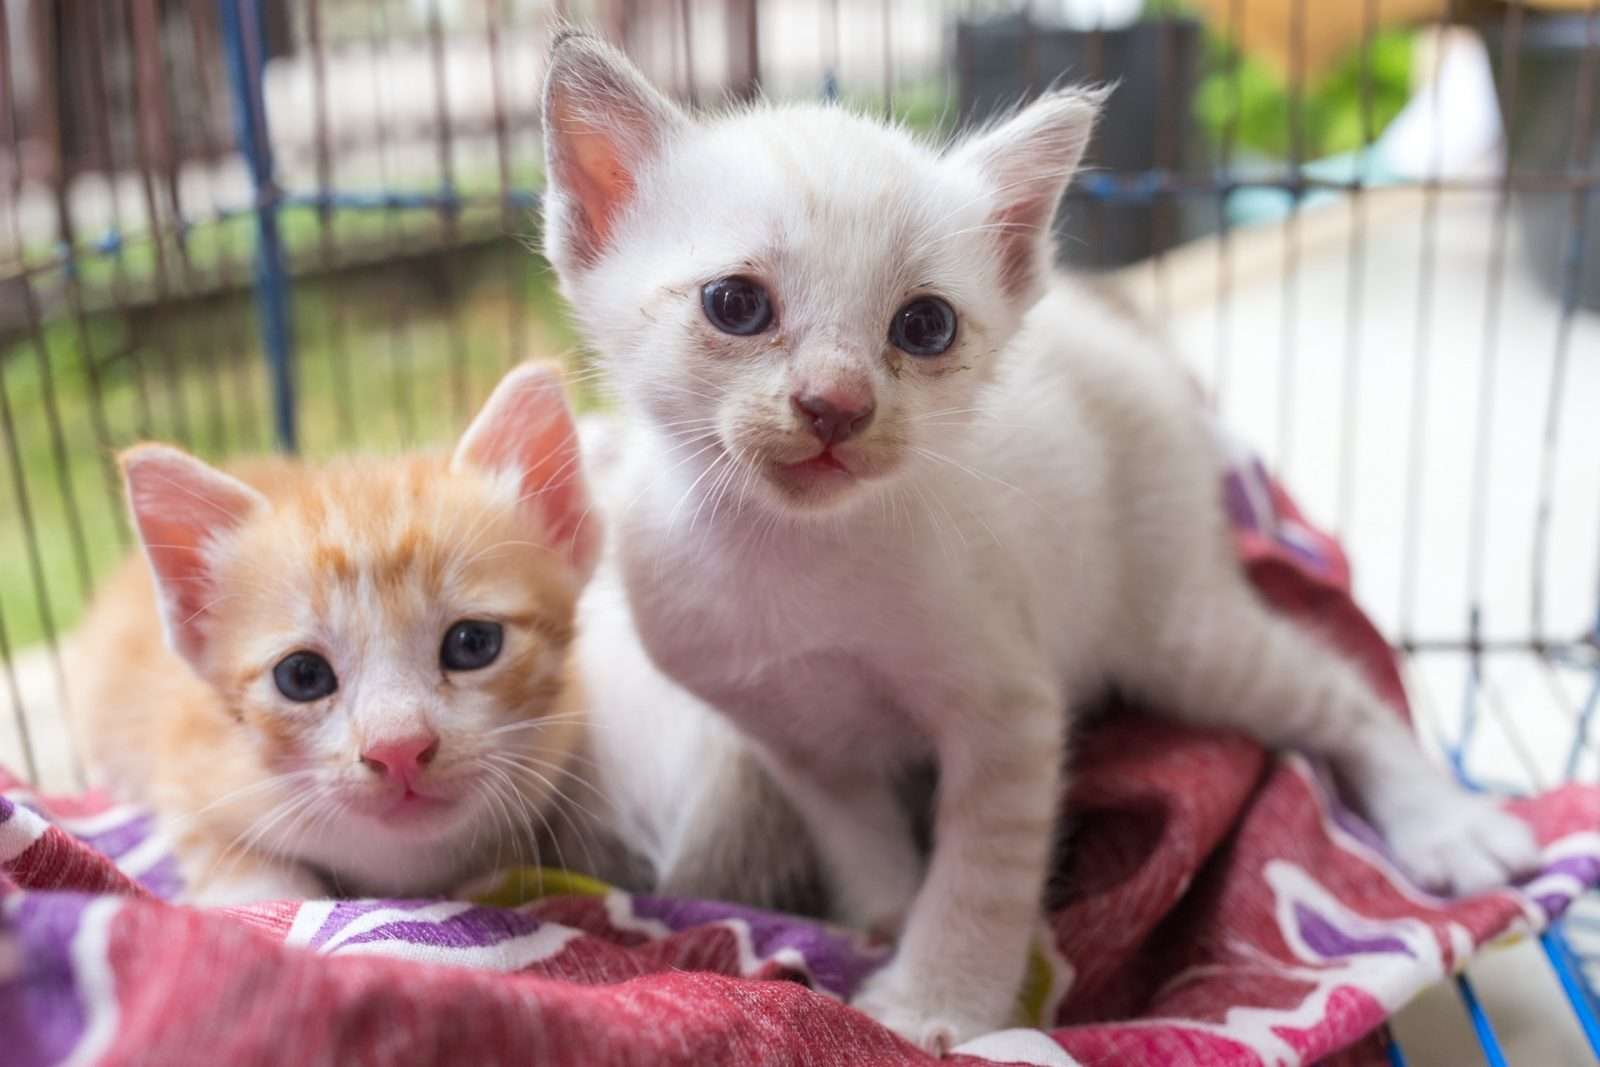 Adopting a Rescue: How to Choose the Right Kitty for Your Home